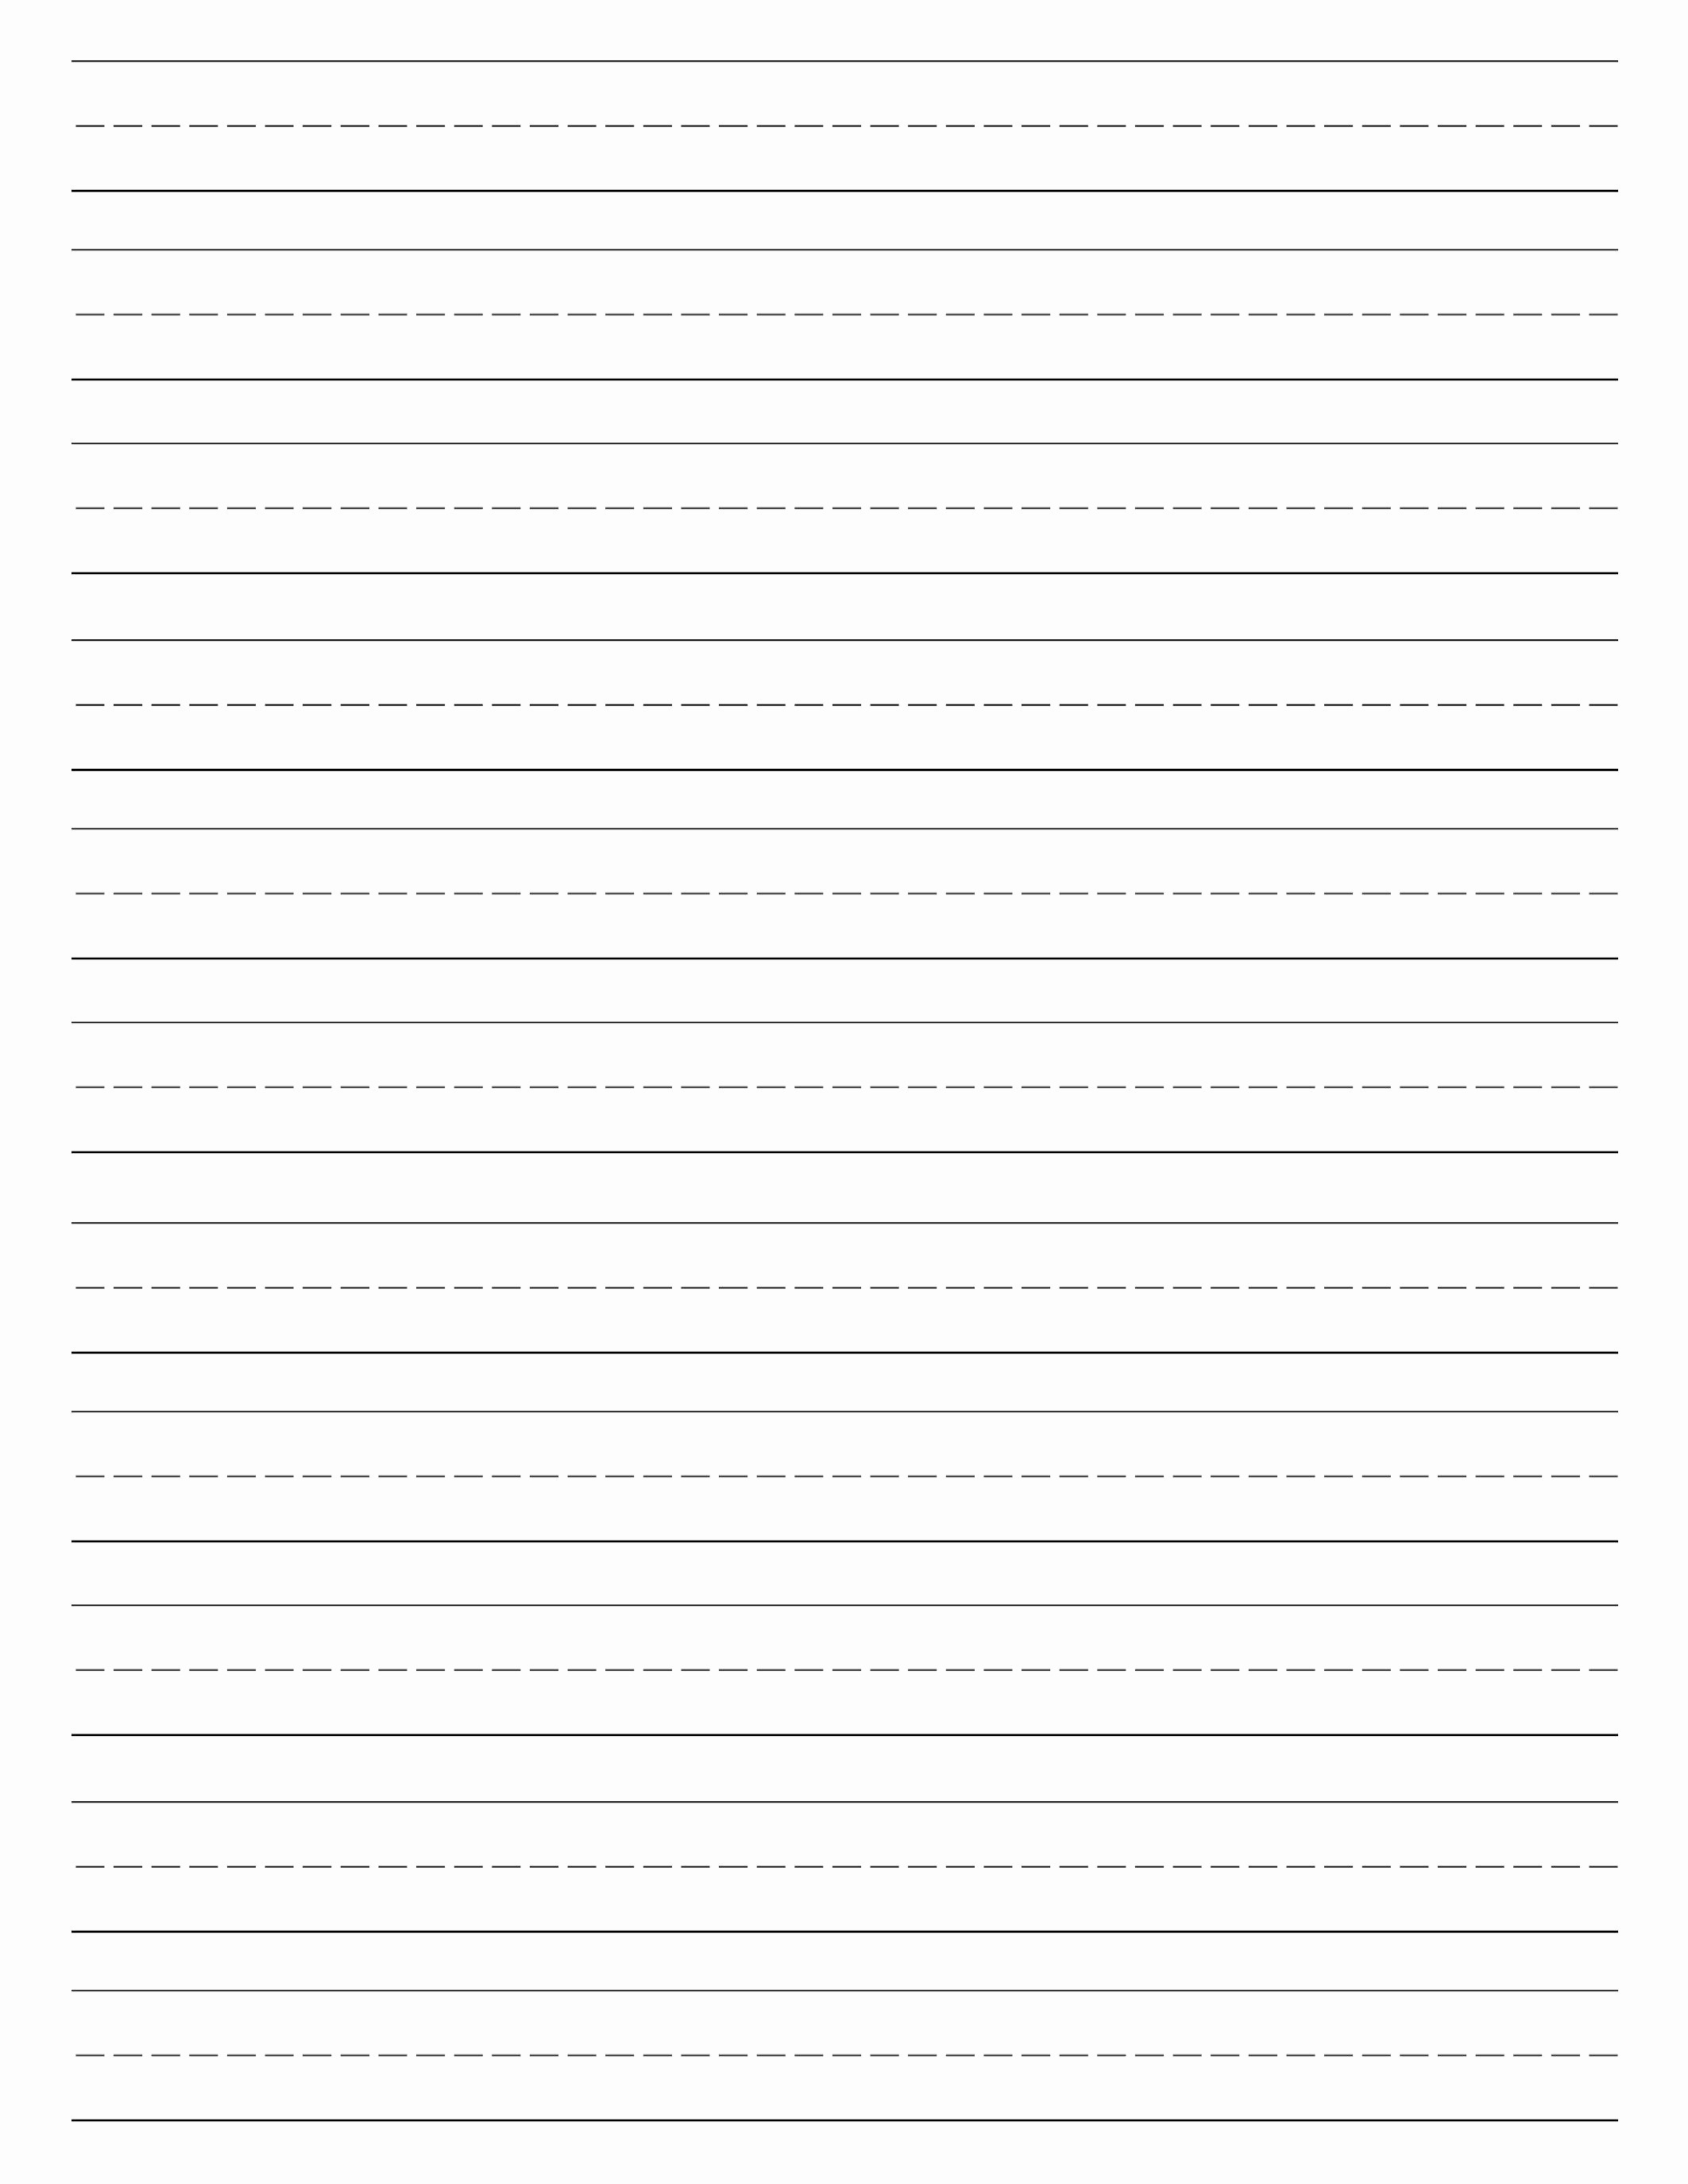 Practice Writing Paper for Kindergarten Elegant Free Printable Lined Paper Handwriting Paper Template